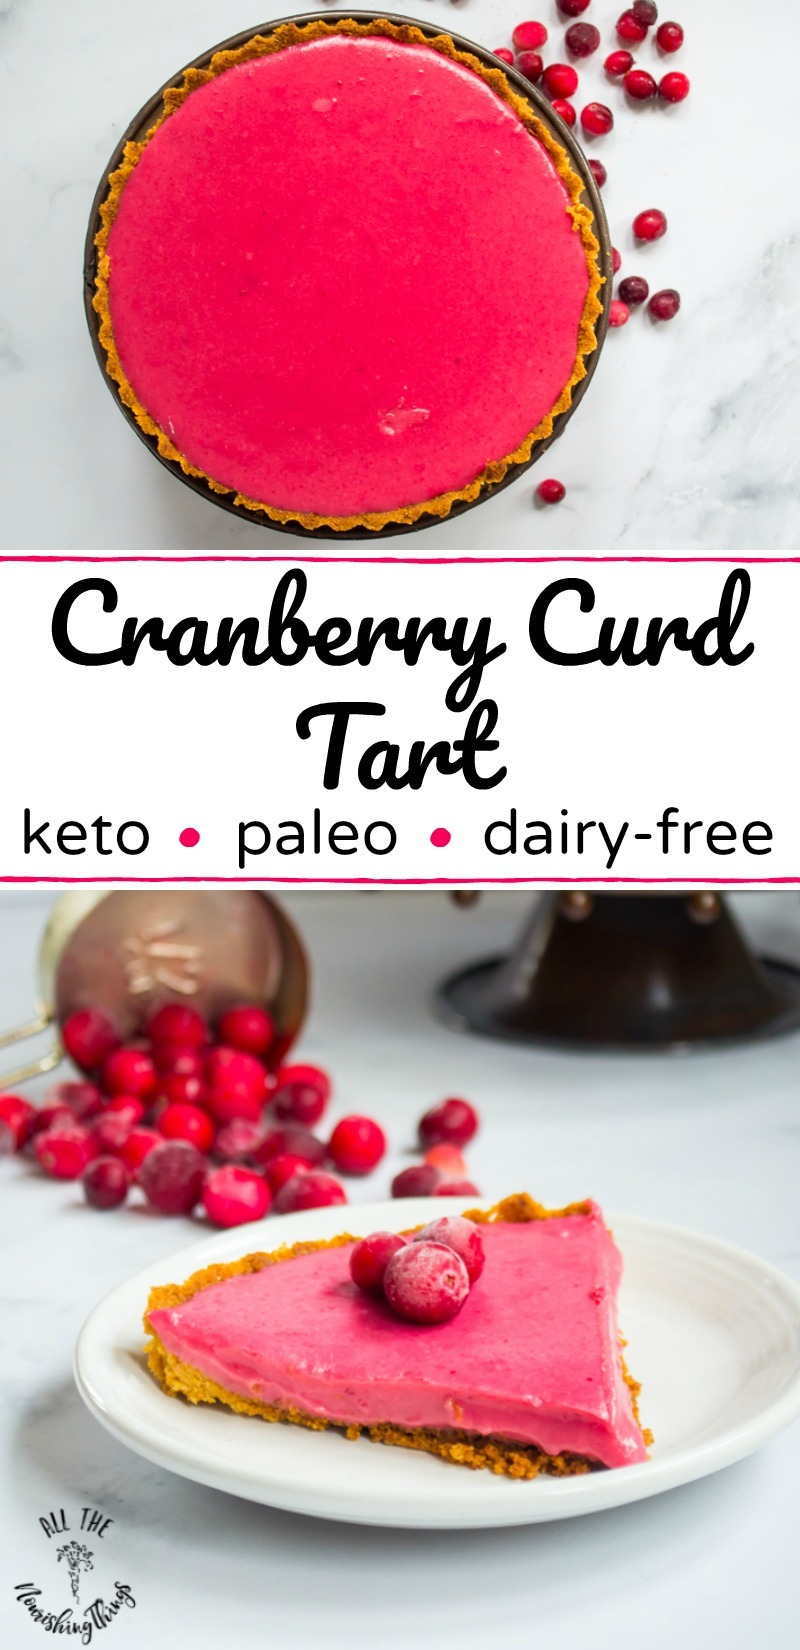 keto cranberry curd tart whole and slice with text overlay